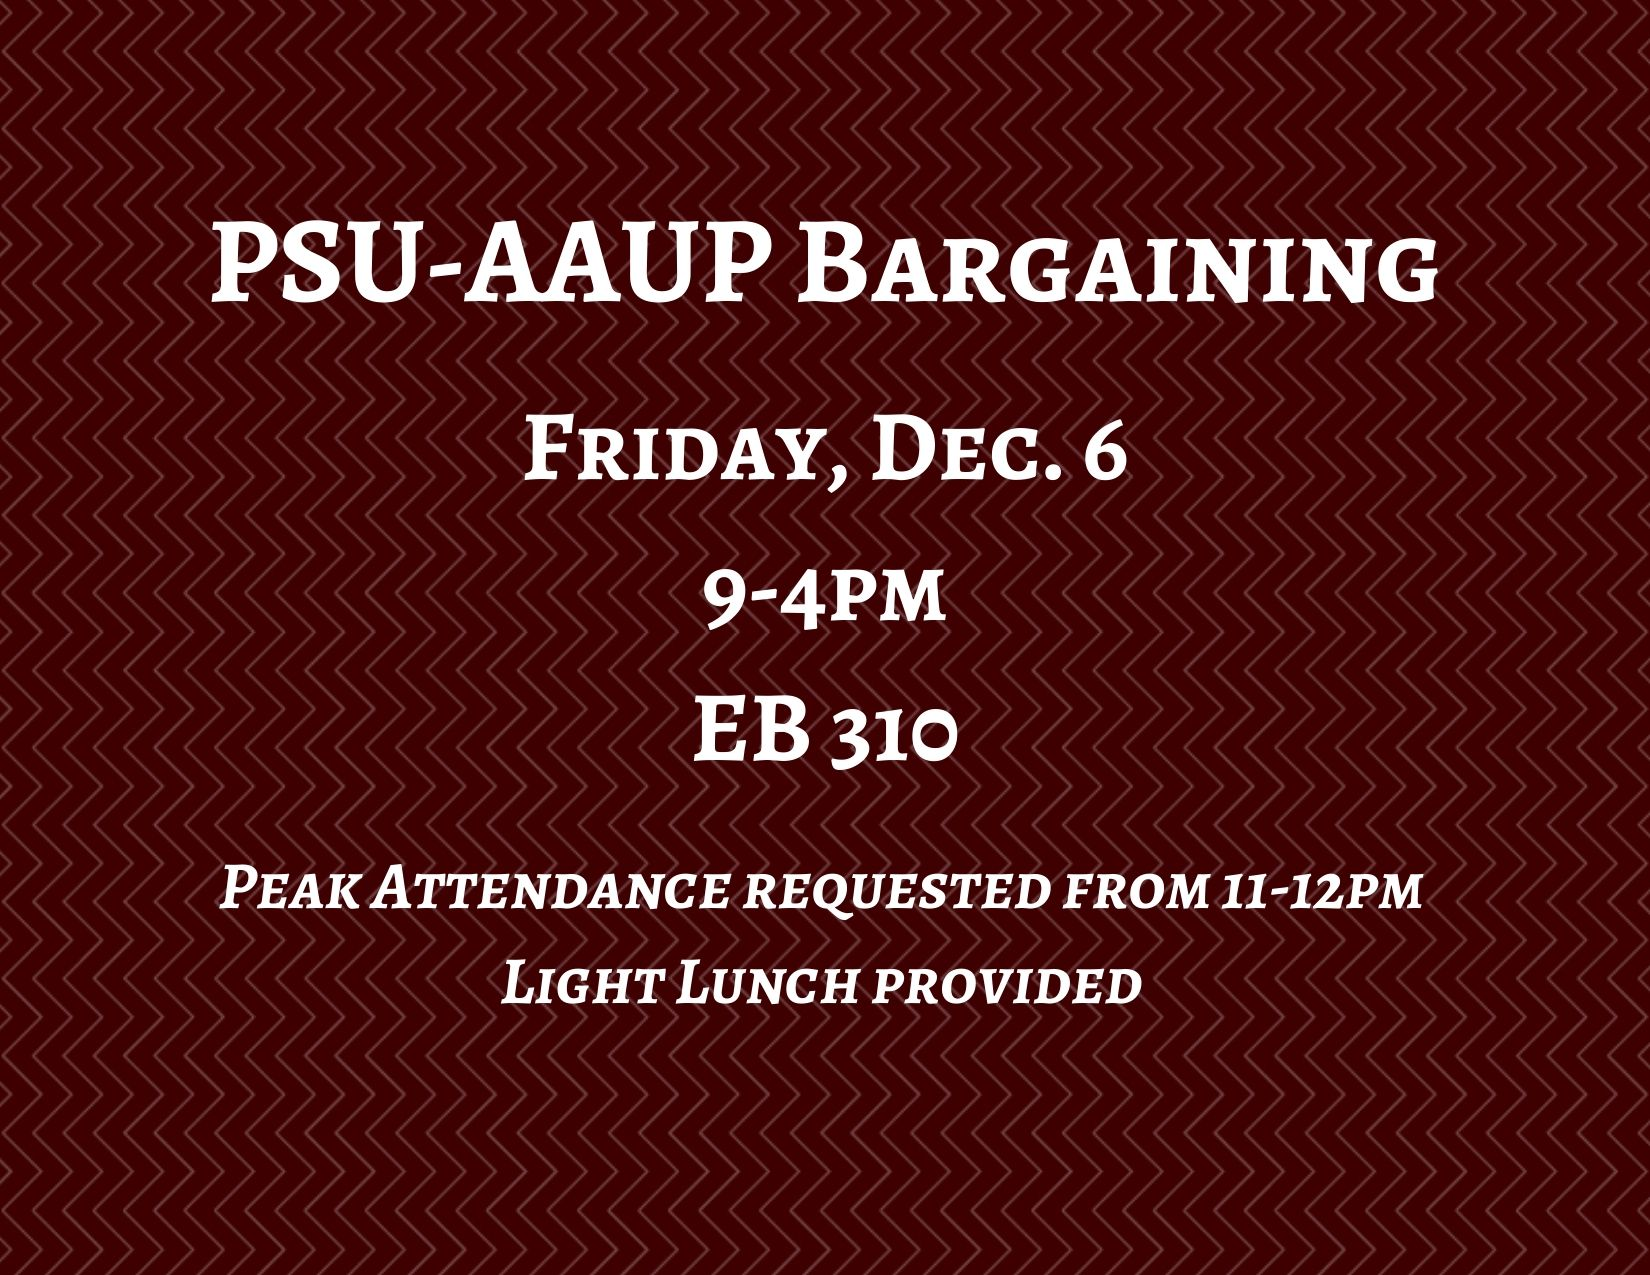 PSU-AAUP Bargaining - December 6